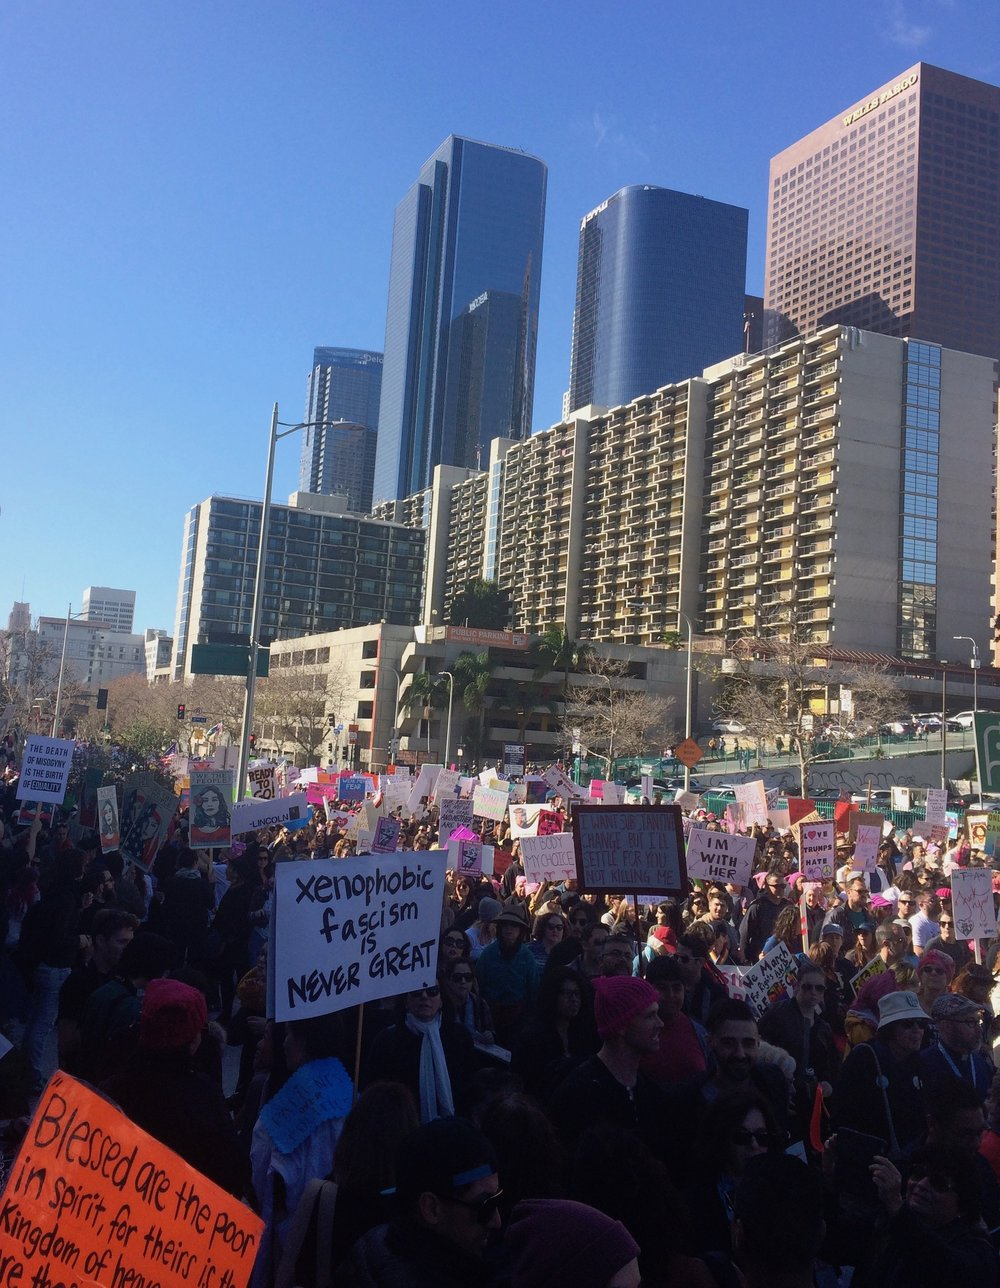 Demonstrators flooded downtown Los Angeles on January 21st. (Photo by Loud Owl)